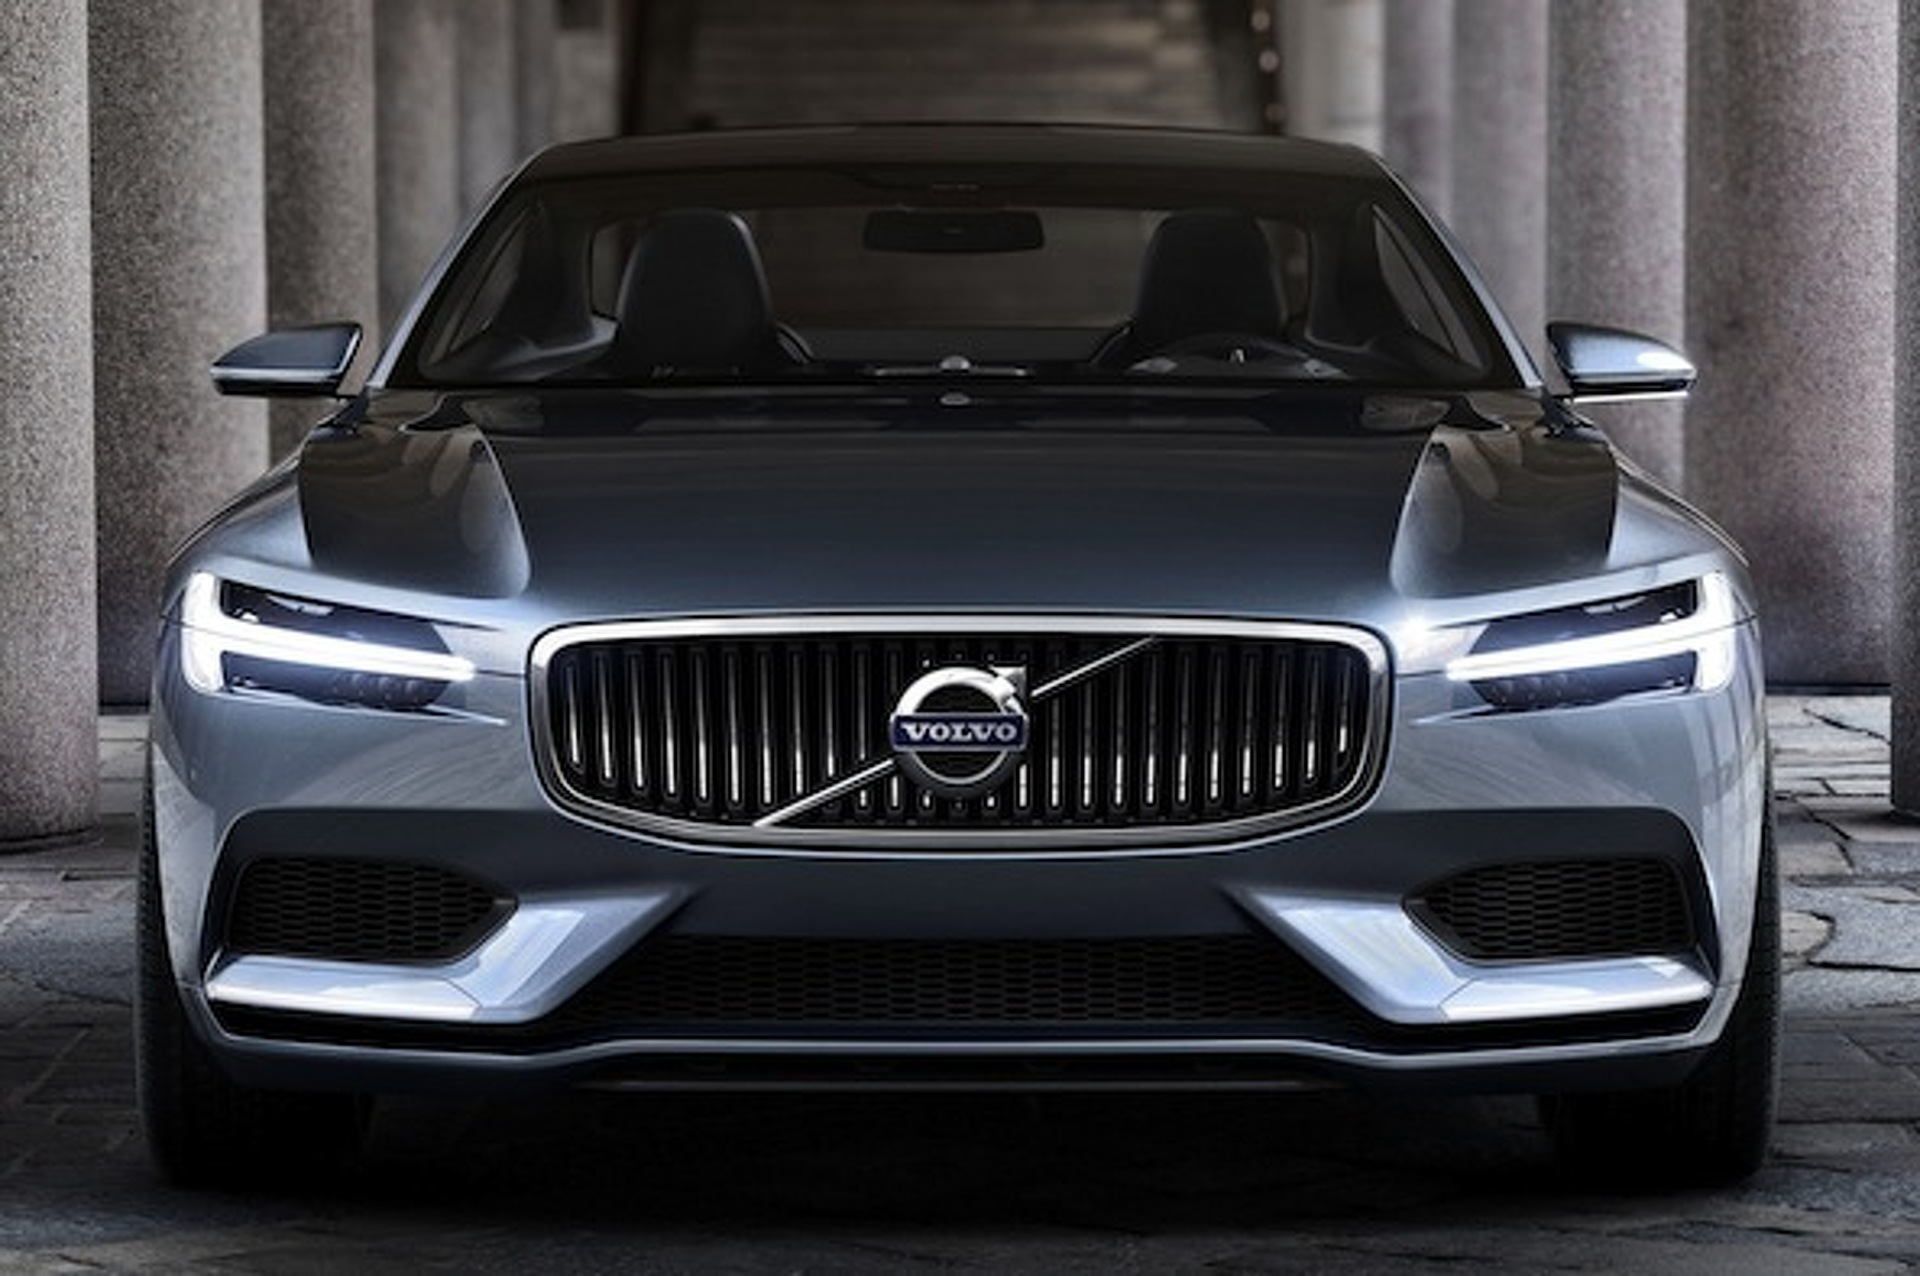 2013 Frankfurt Motor Show: What to Expect